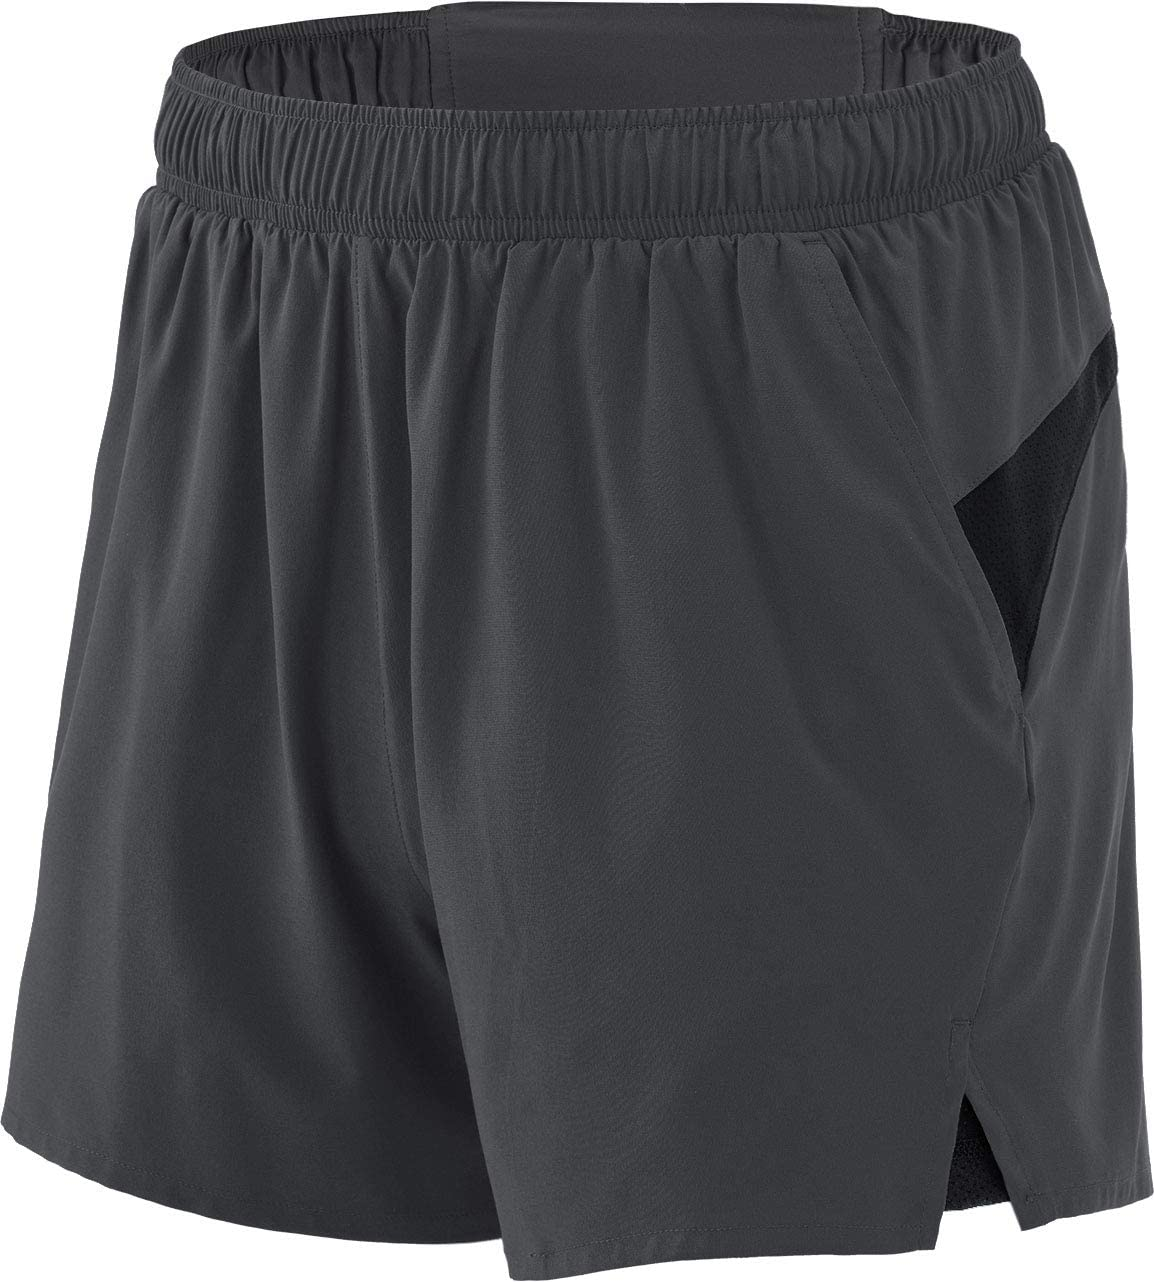 TSLA Mens 4 inches Quick-Dry Running Active Performance Shorts